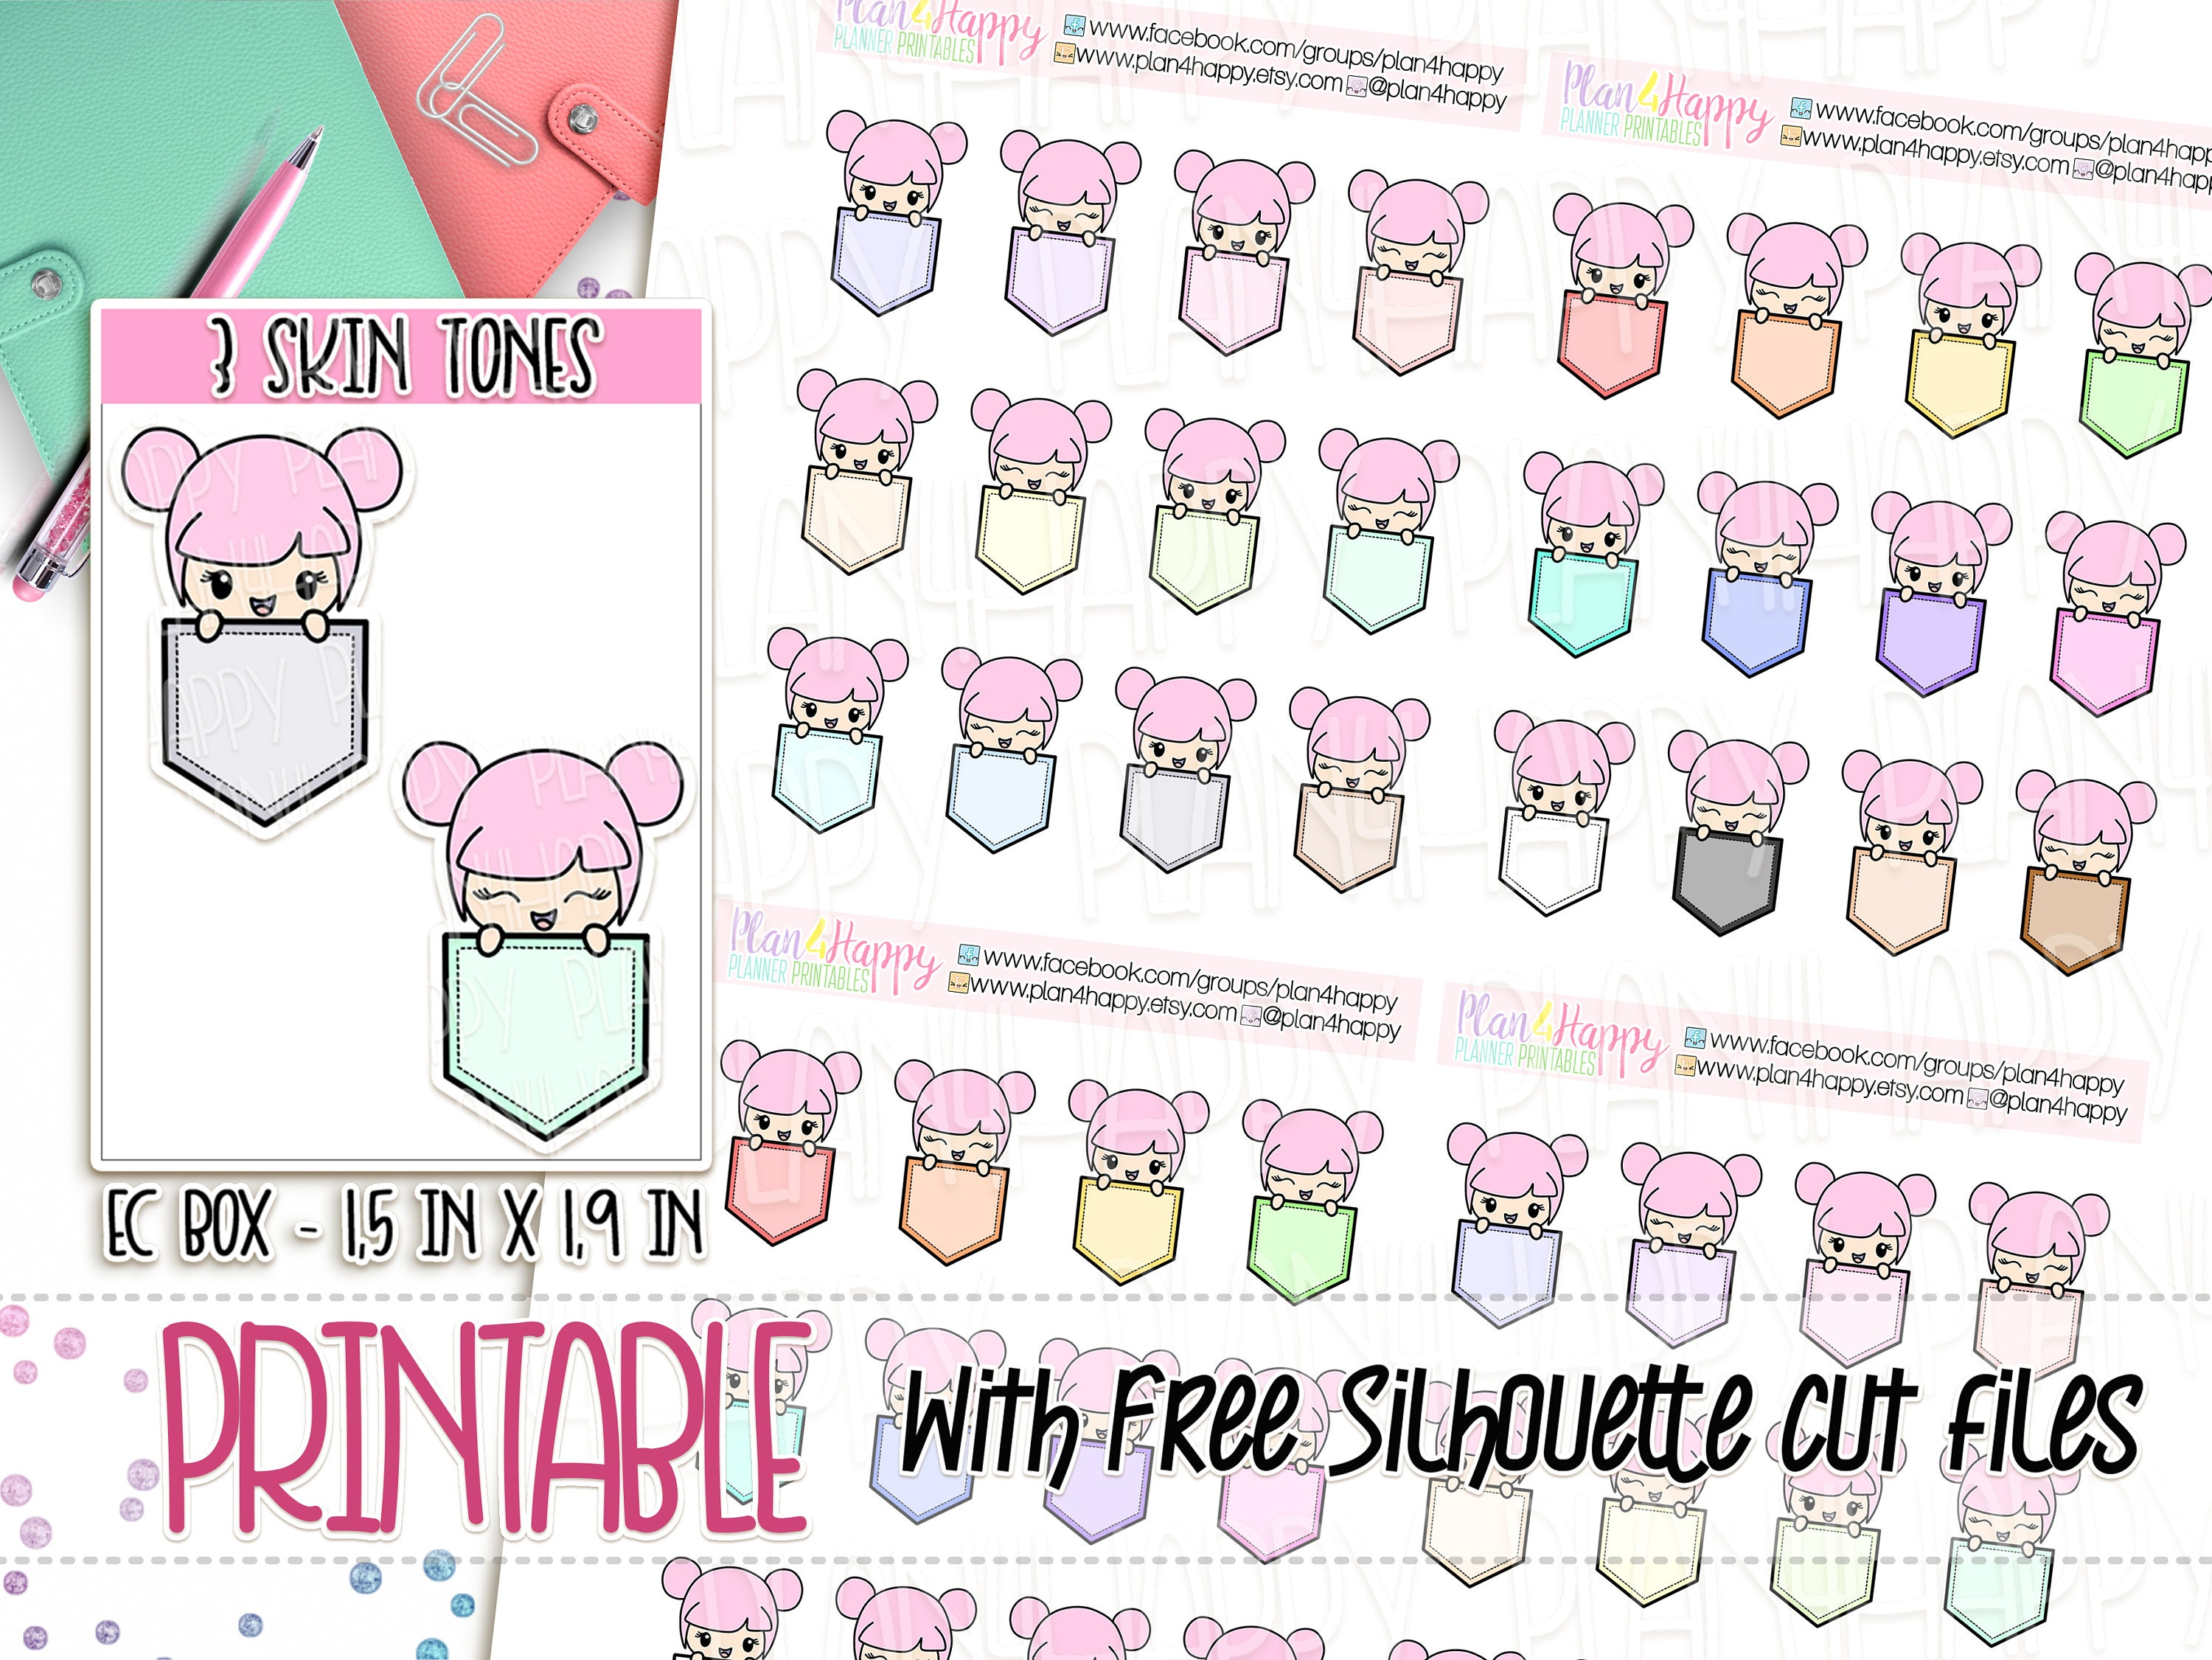 photo relating to Printable Sticker Sheets named Printable Planner Stickers, Rosie - 3 Pores and skin Tones, Peekaboo Flag Stickers - Very low, Lovable Stickers, Printable Sticker Sheets, Doodle Stickers